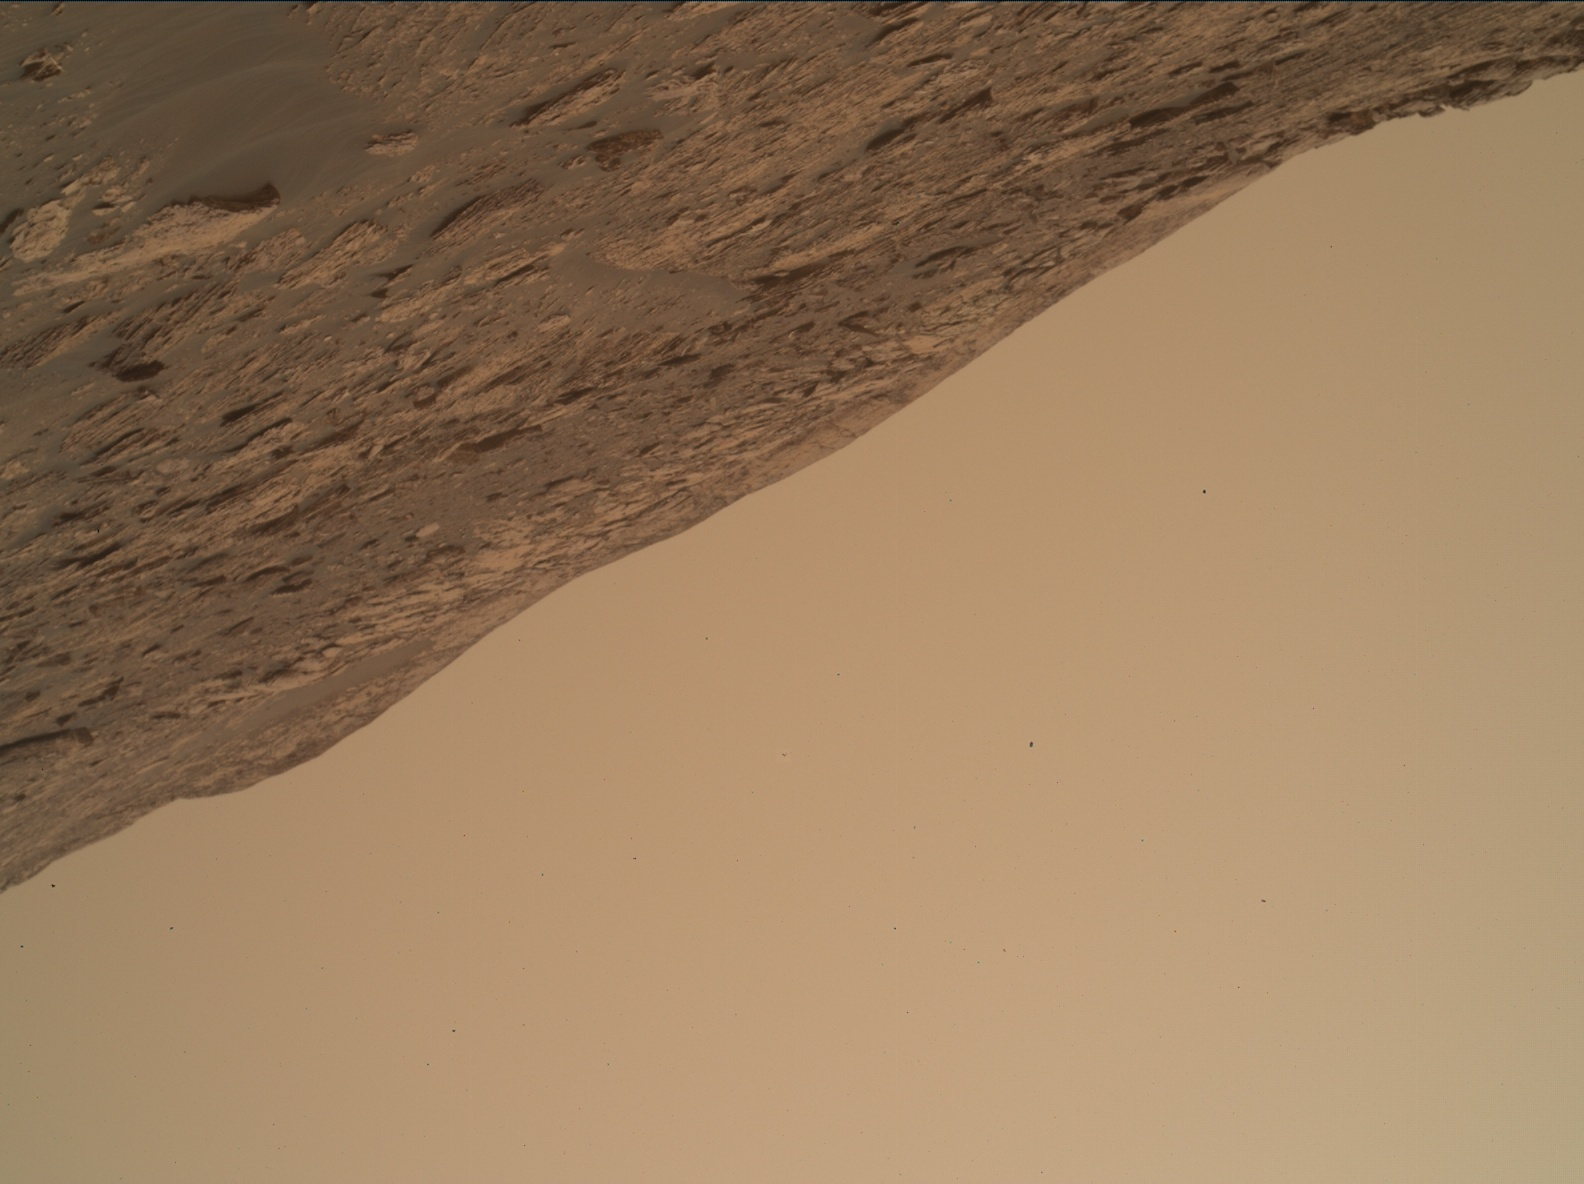 Nasa's Mars rover Curiosity acquired this image using its Mars Hand Lens Imager (MAHLI) on Sol 2082